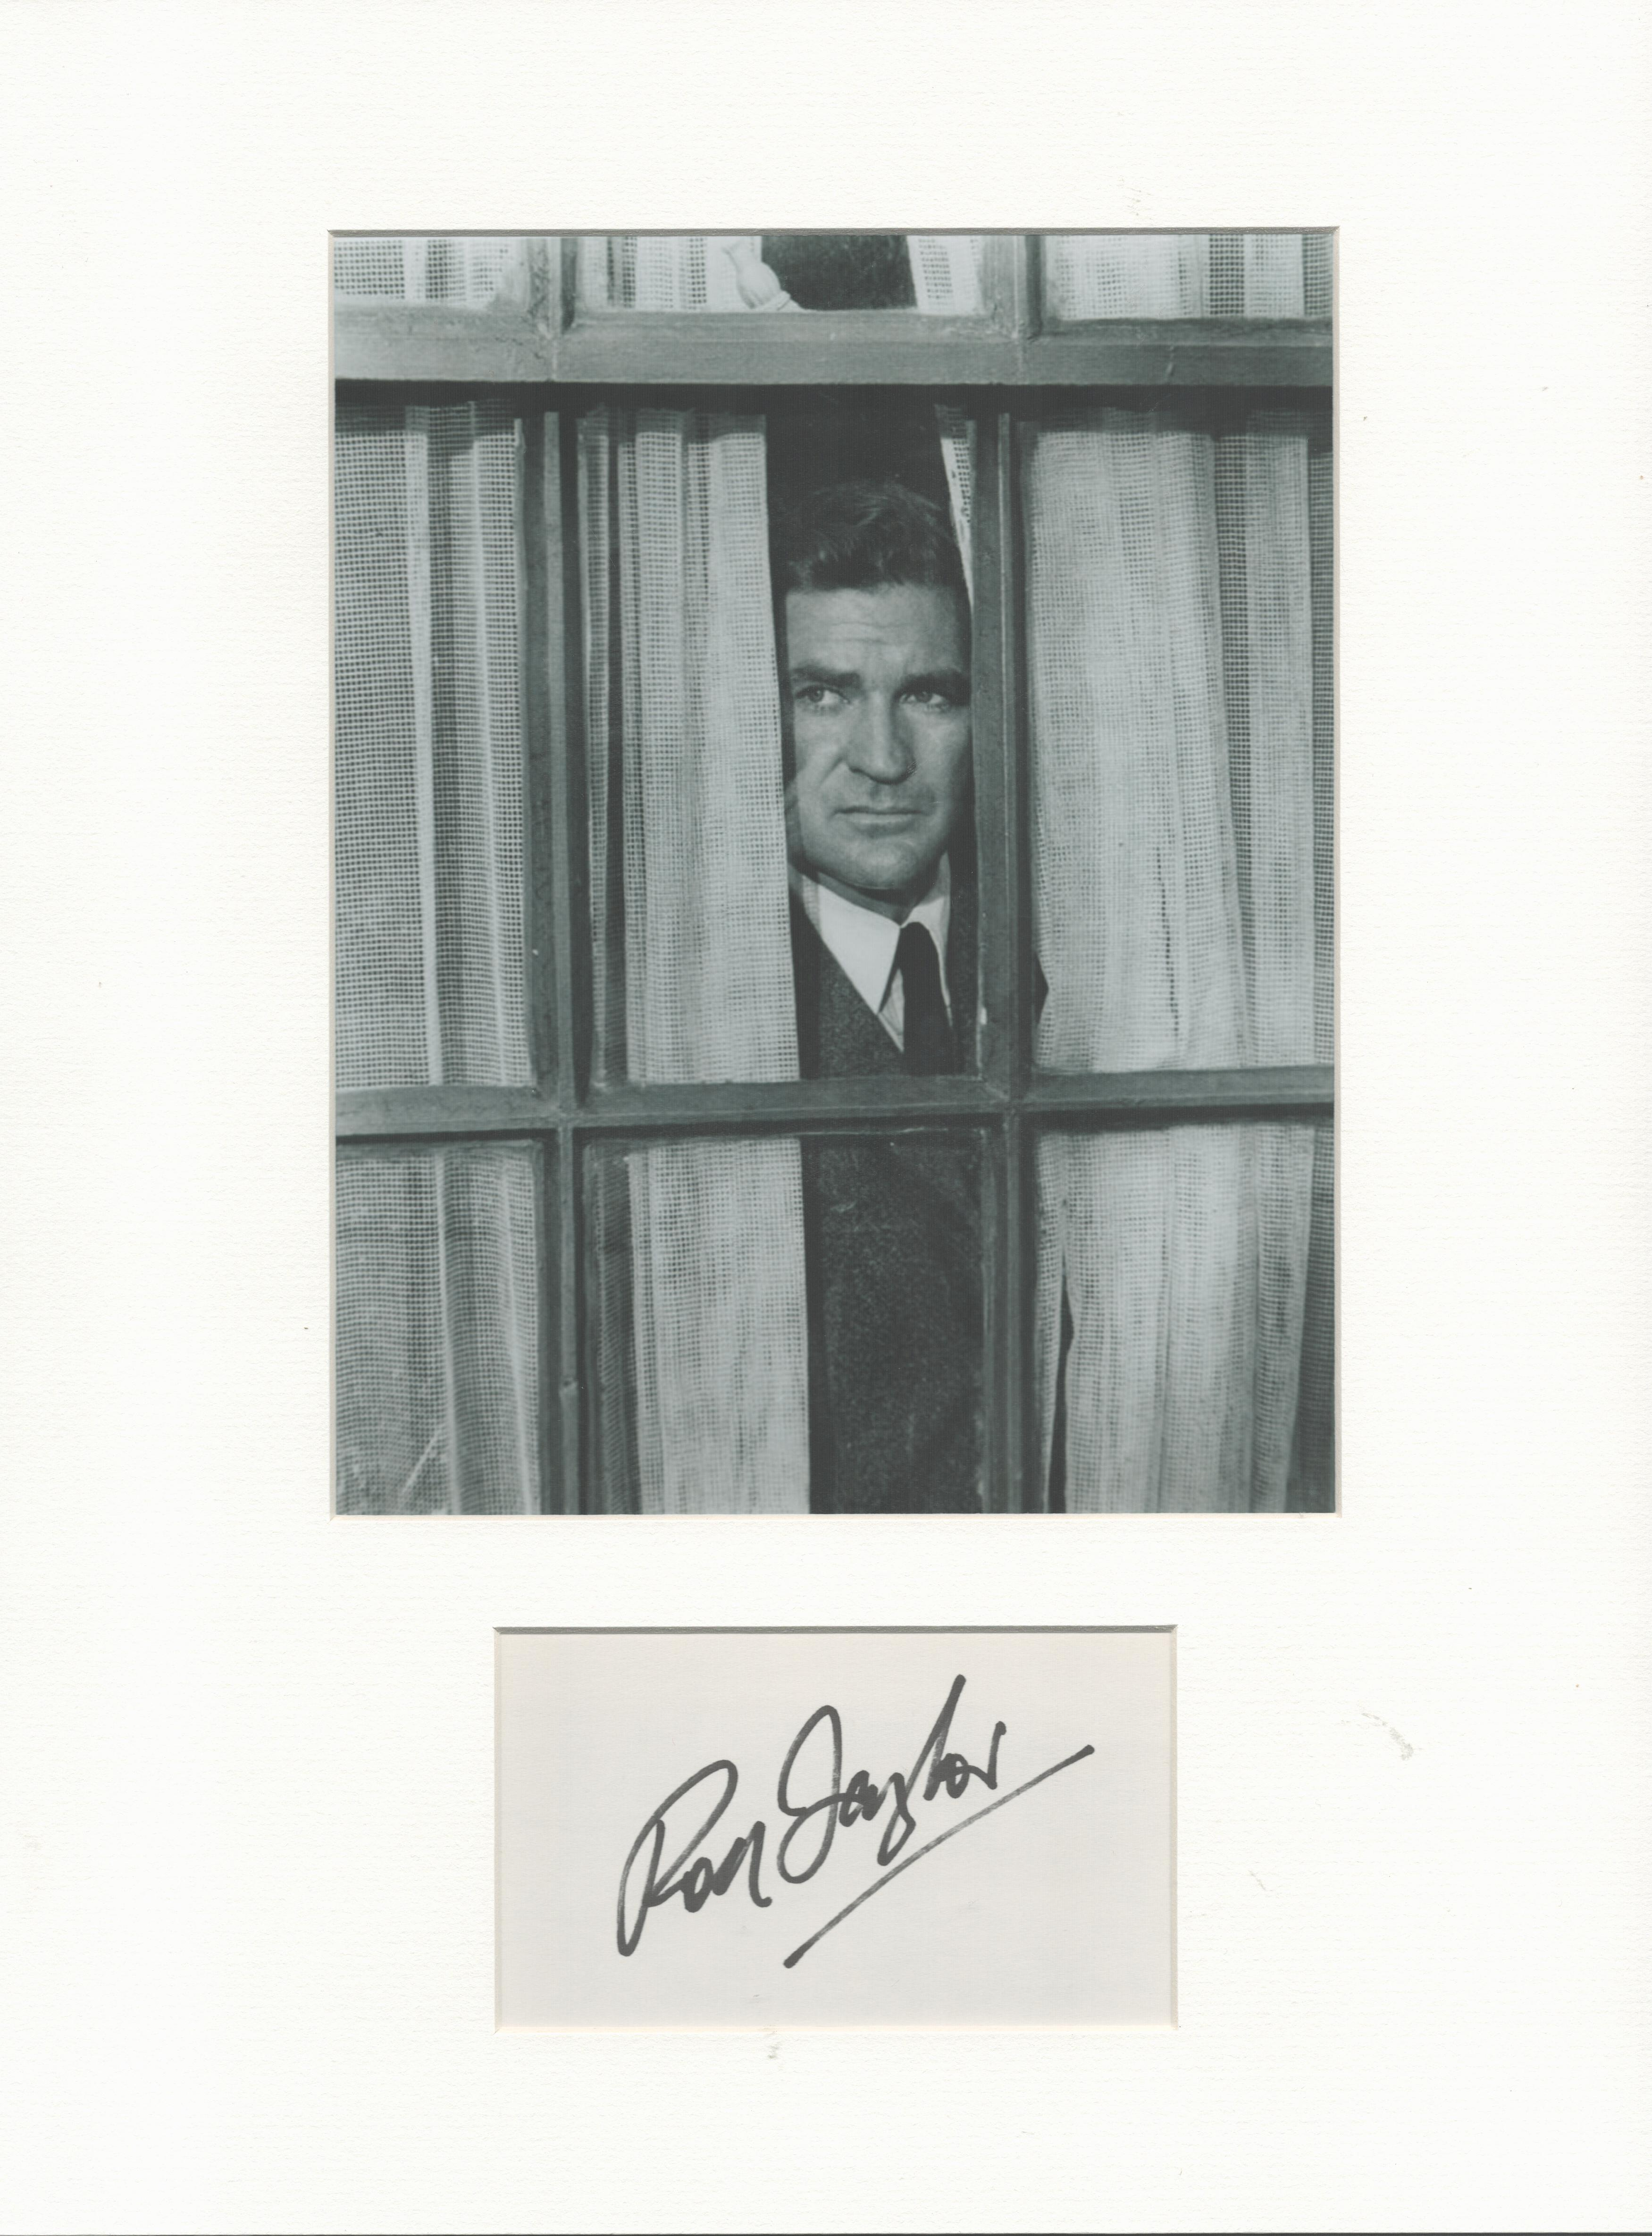 Rod Taylor signature piece in autograph presentation. Mounted with photograph to approx. 16 x 12